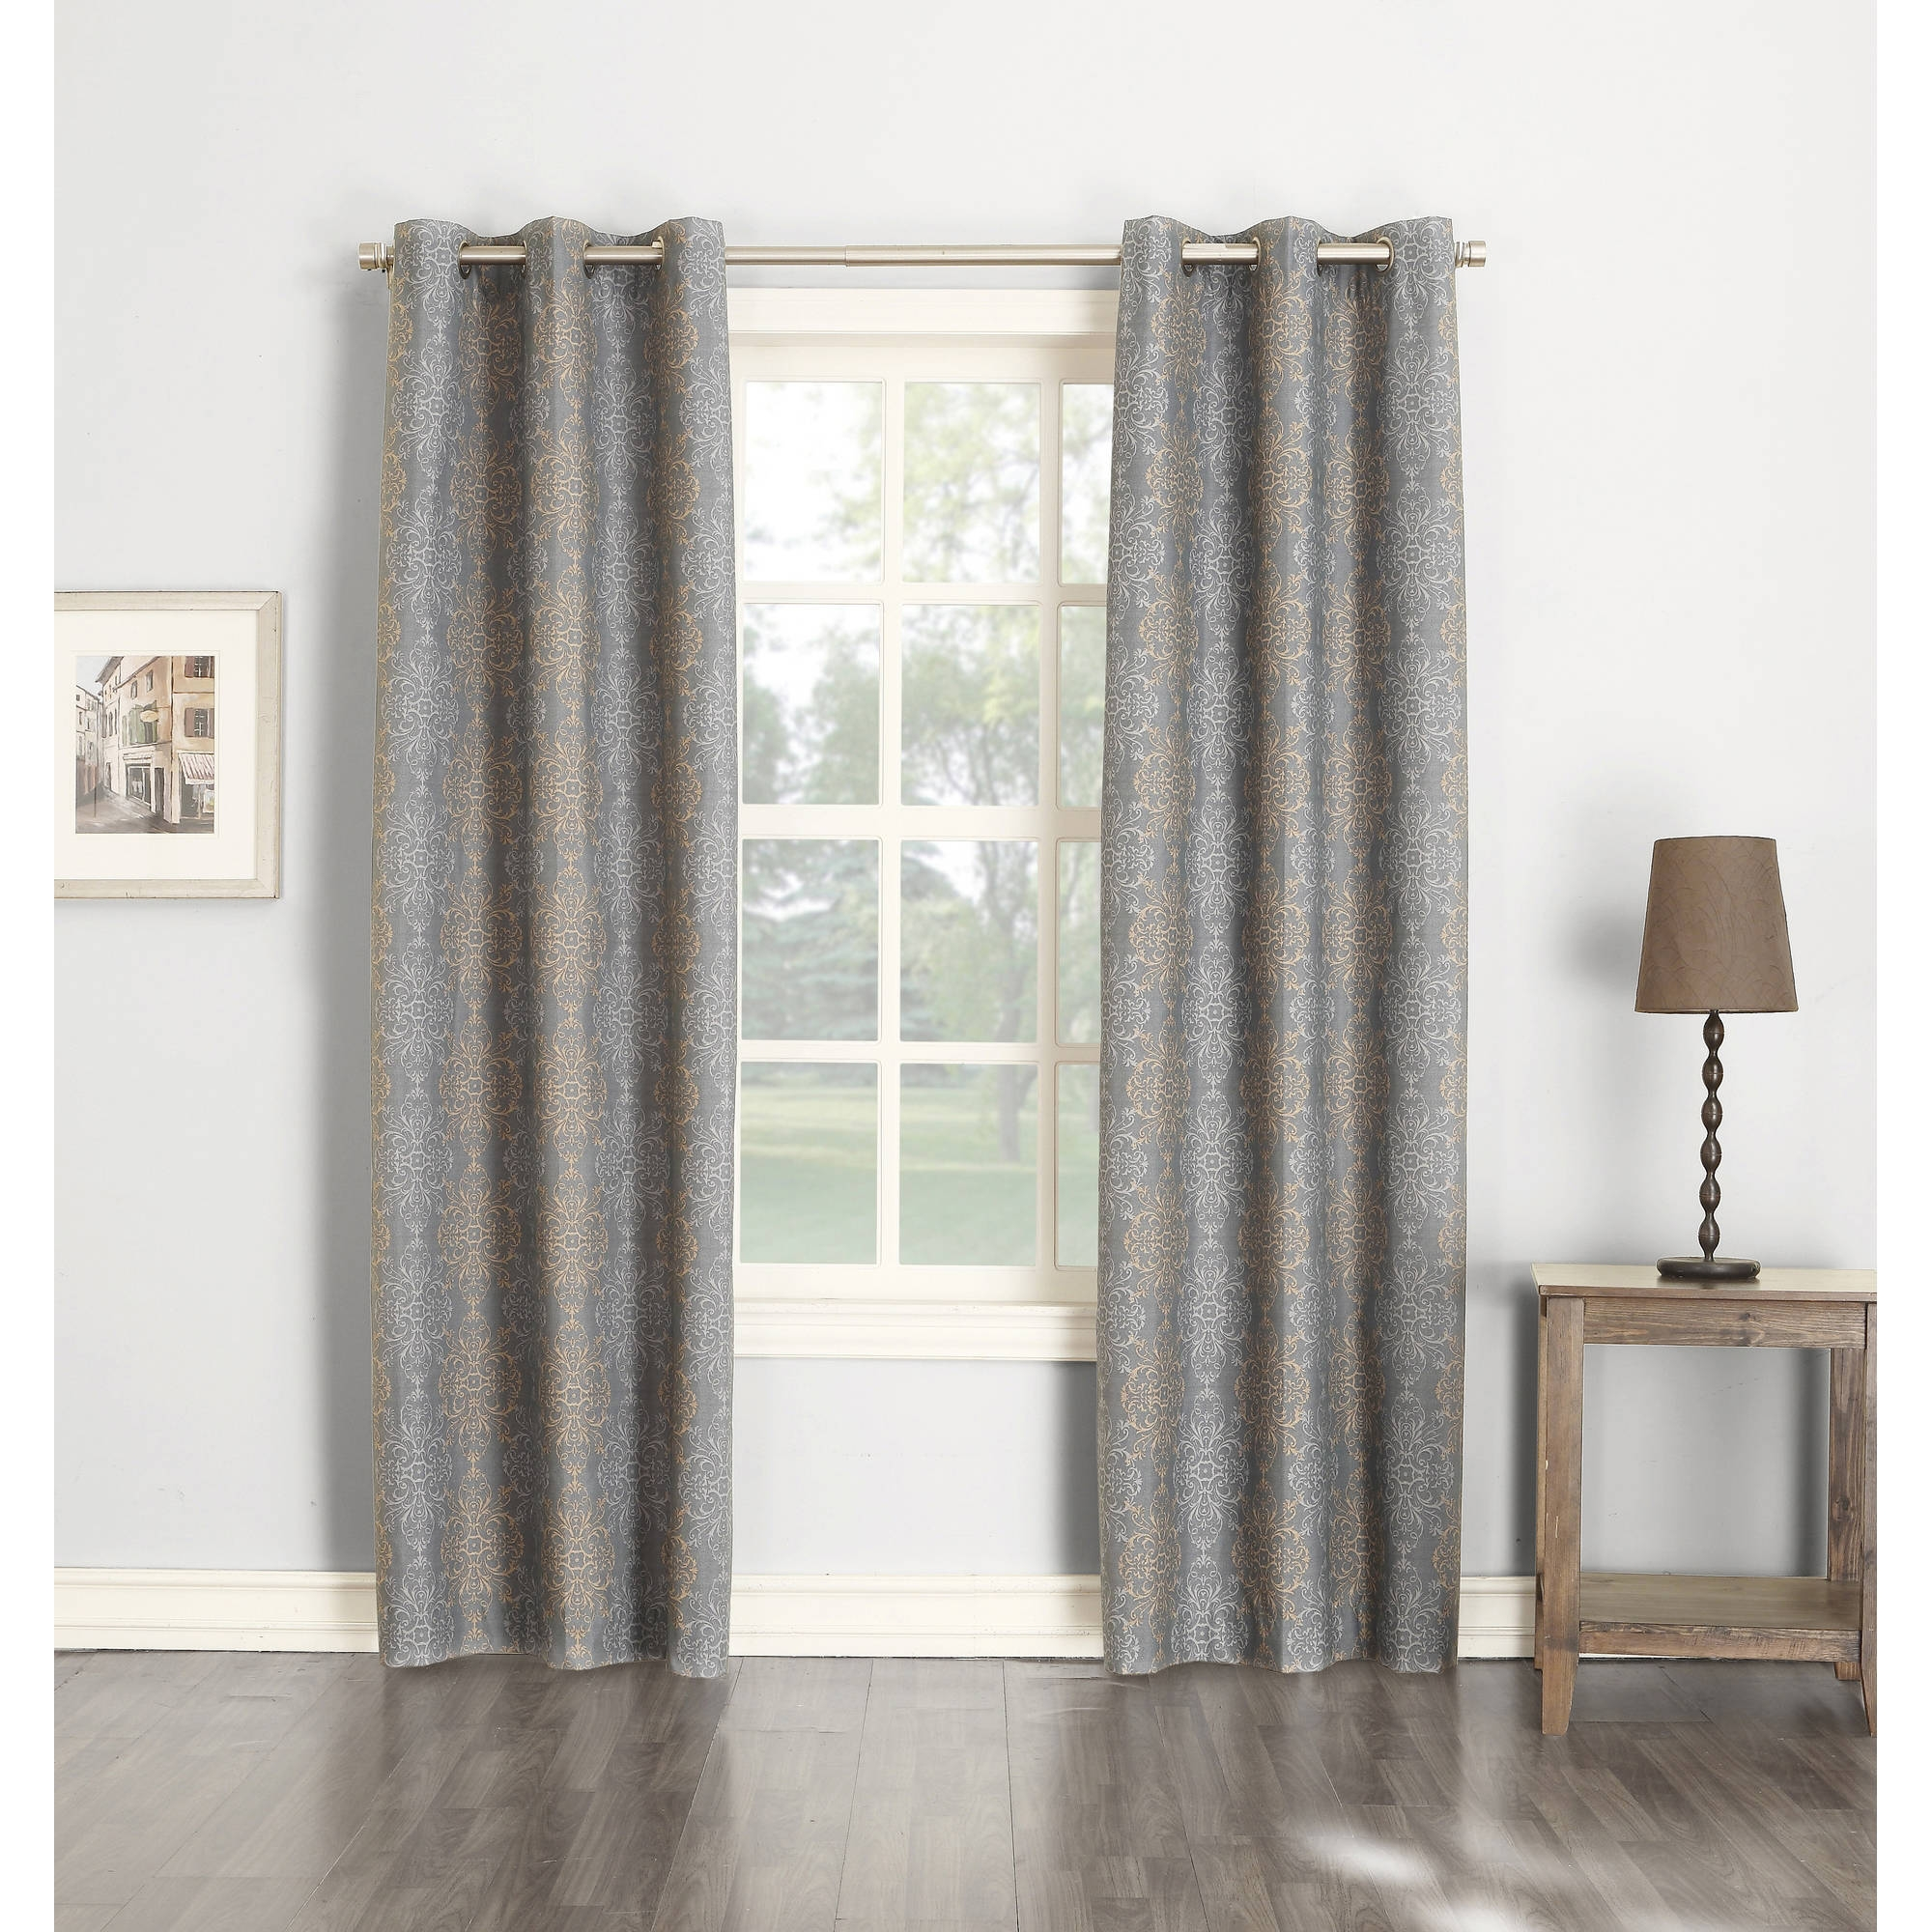 Thermal Lined Curtains Inside Thermal Lined Drapes (Image 14 of 15)